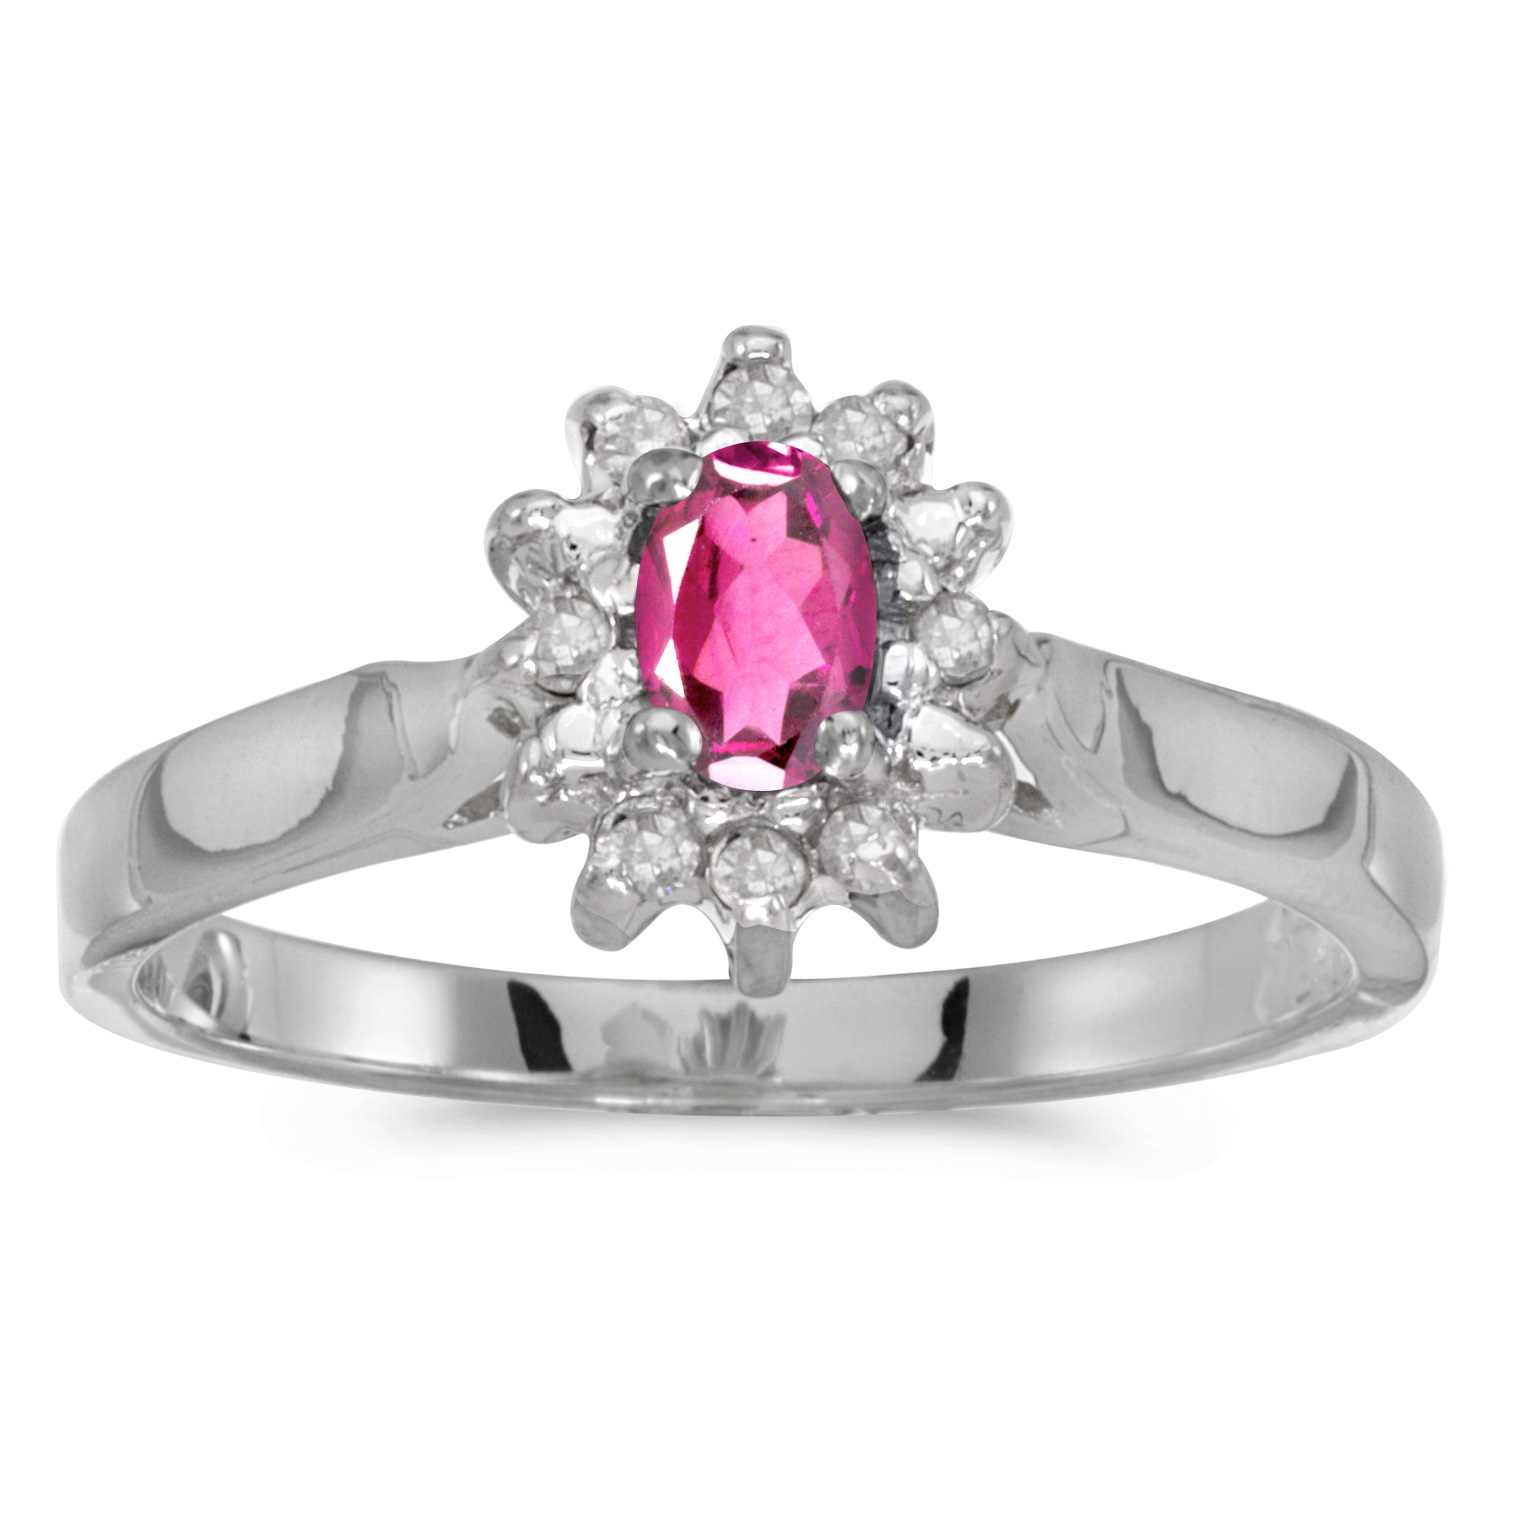 10k White Gold Oval Pink Topaz And Diamond Ring by